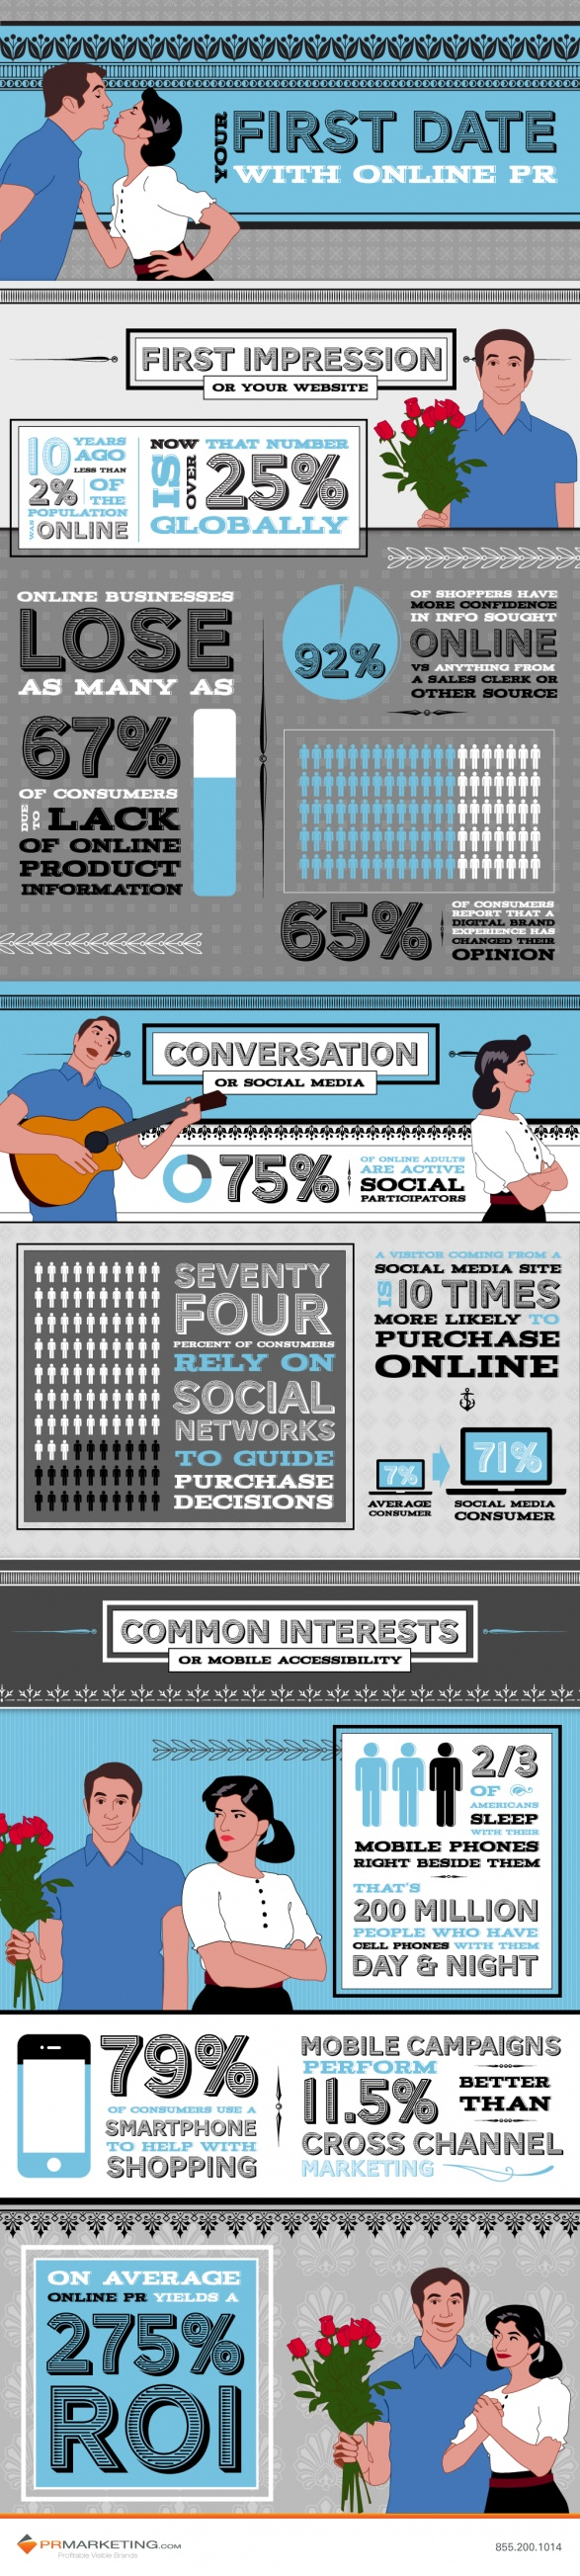 Infographic: Online Public Relations [by PRMarketing.com]